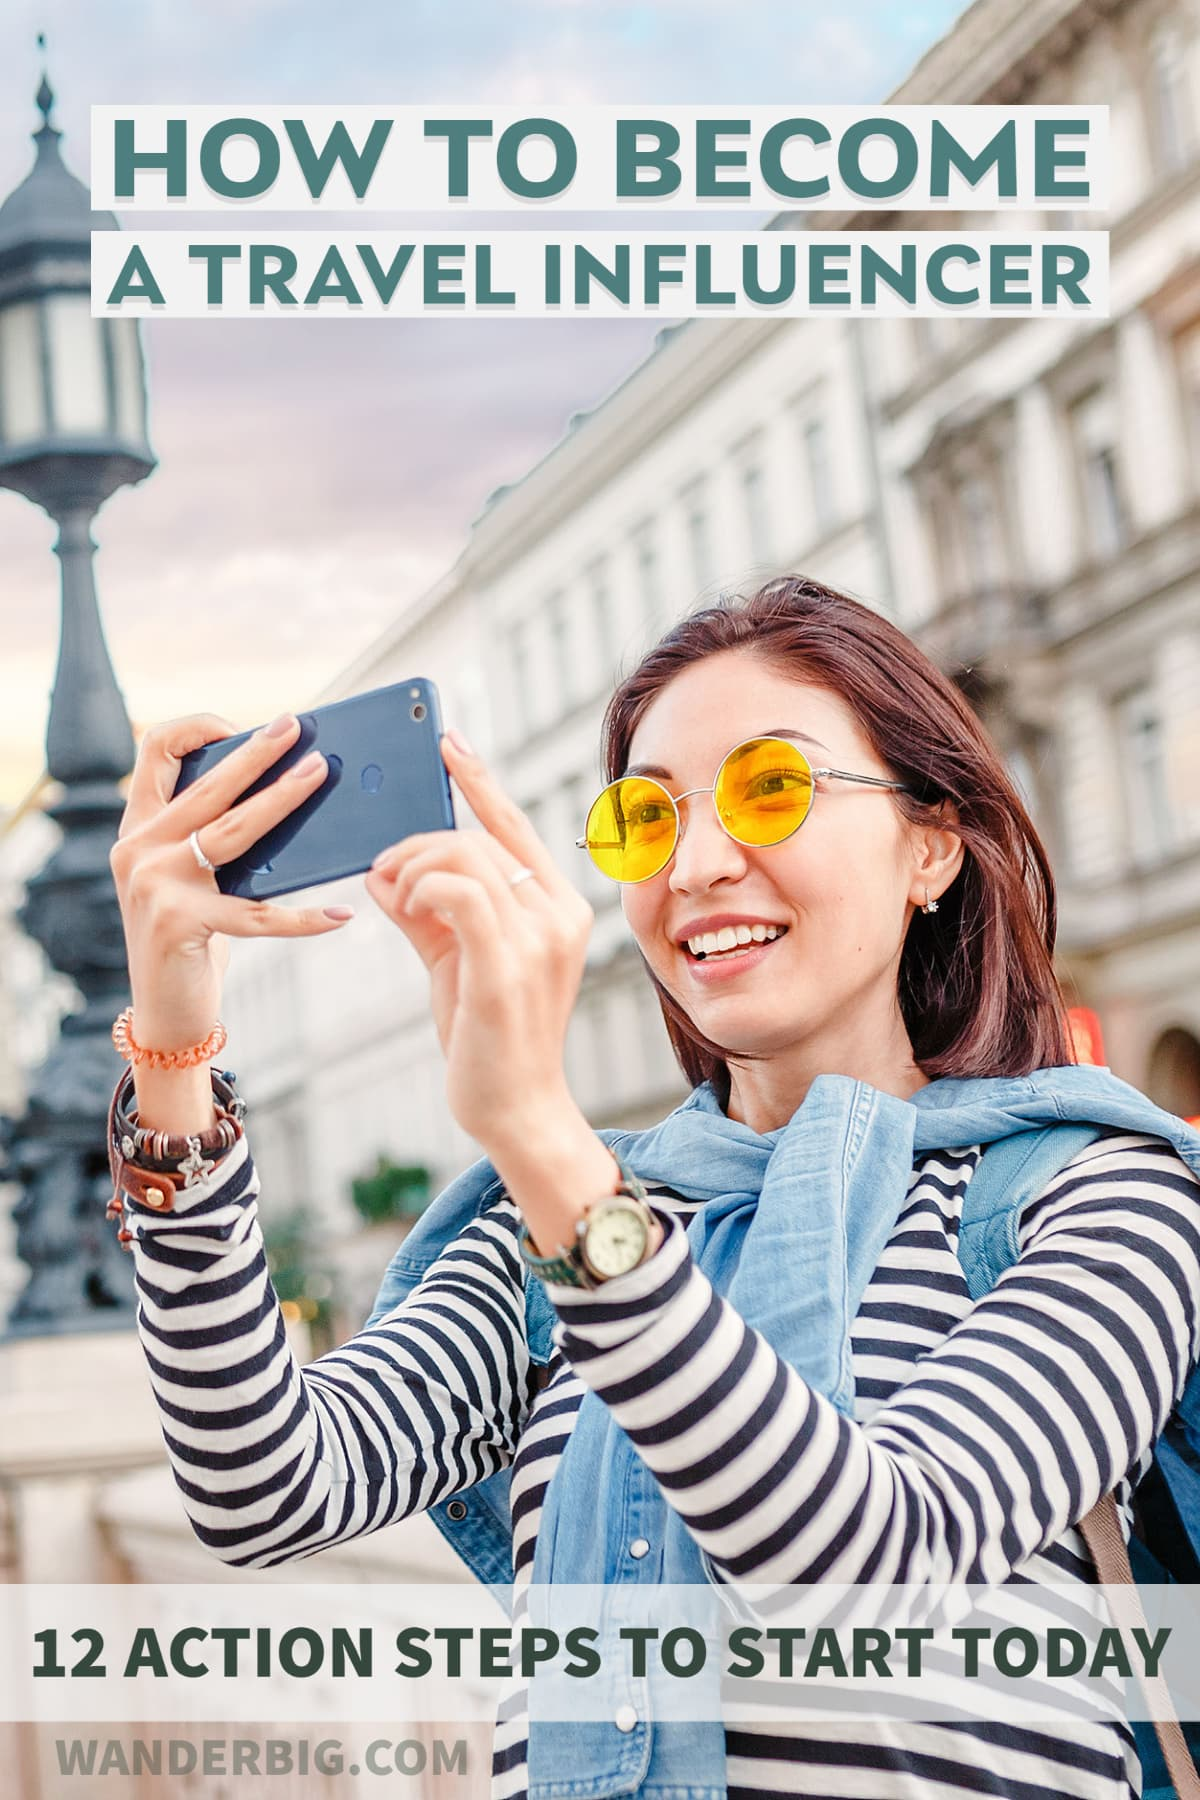 By following these tips, you can boost engagement, grow followers, and develop your travel instagram into a legitimate travel influencer account.